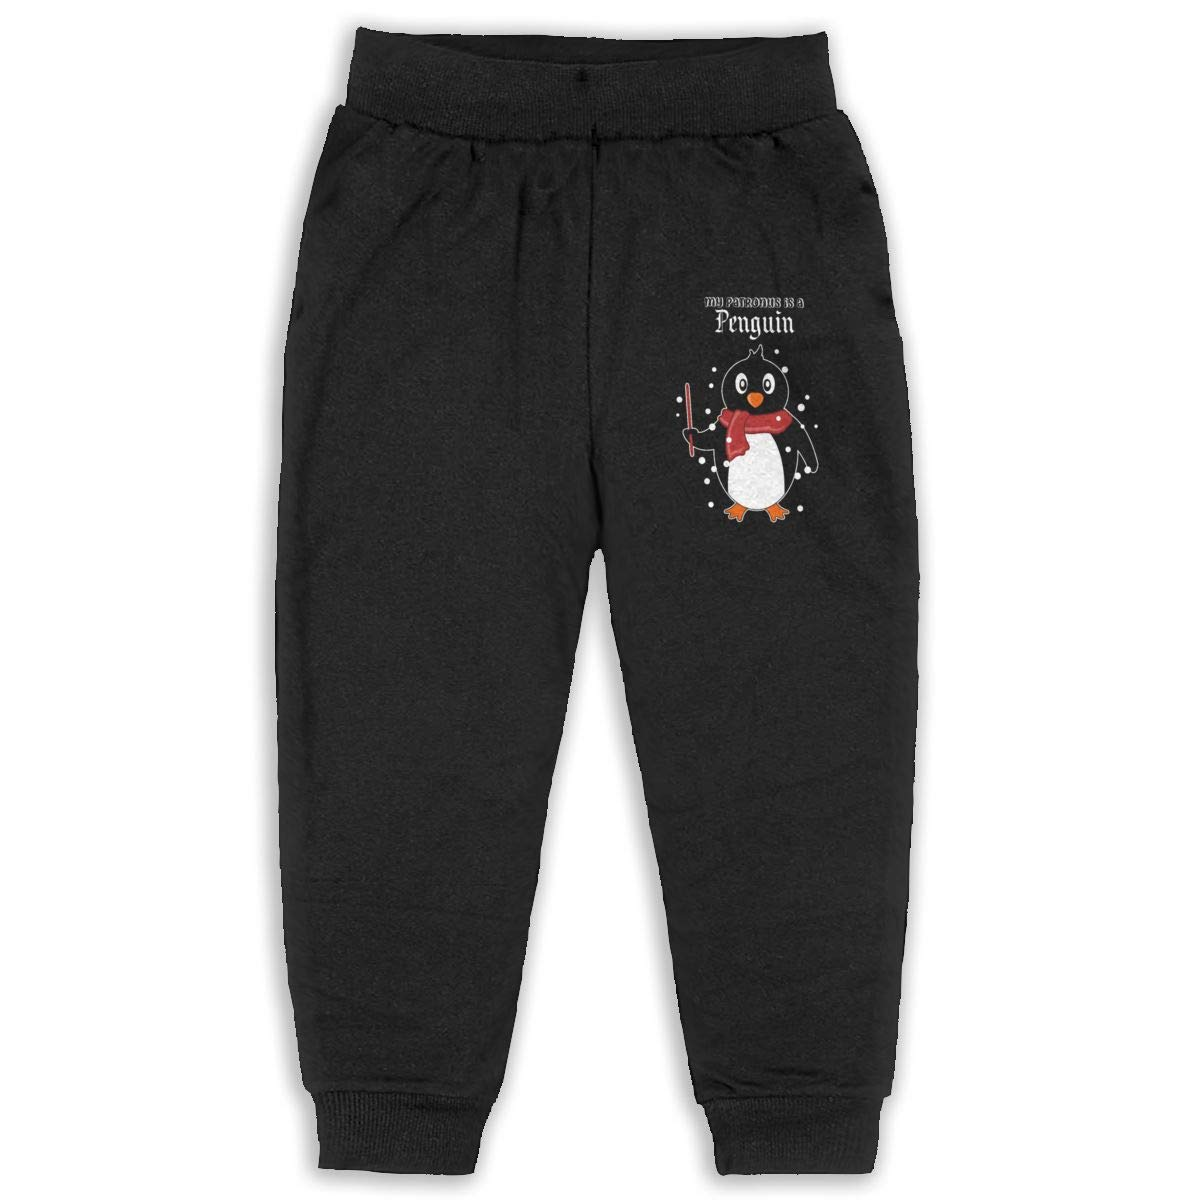 Cqelng Oii My Patronus is A Penguin 2-6T Boys Active Joggers Soft Pants